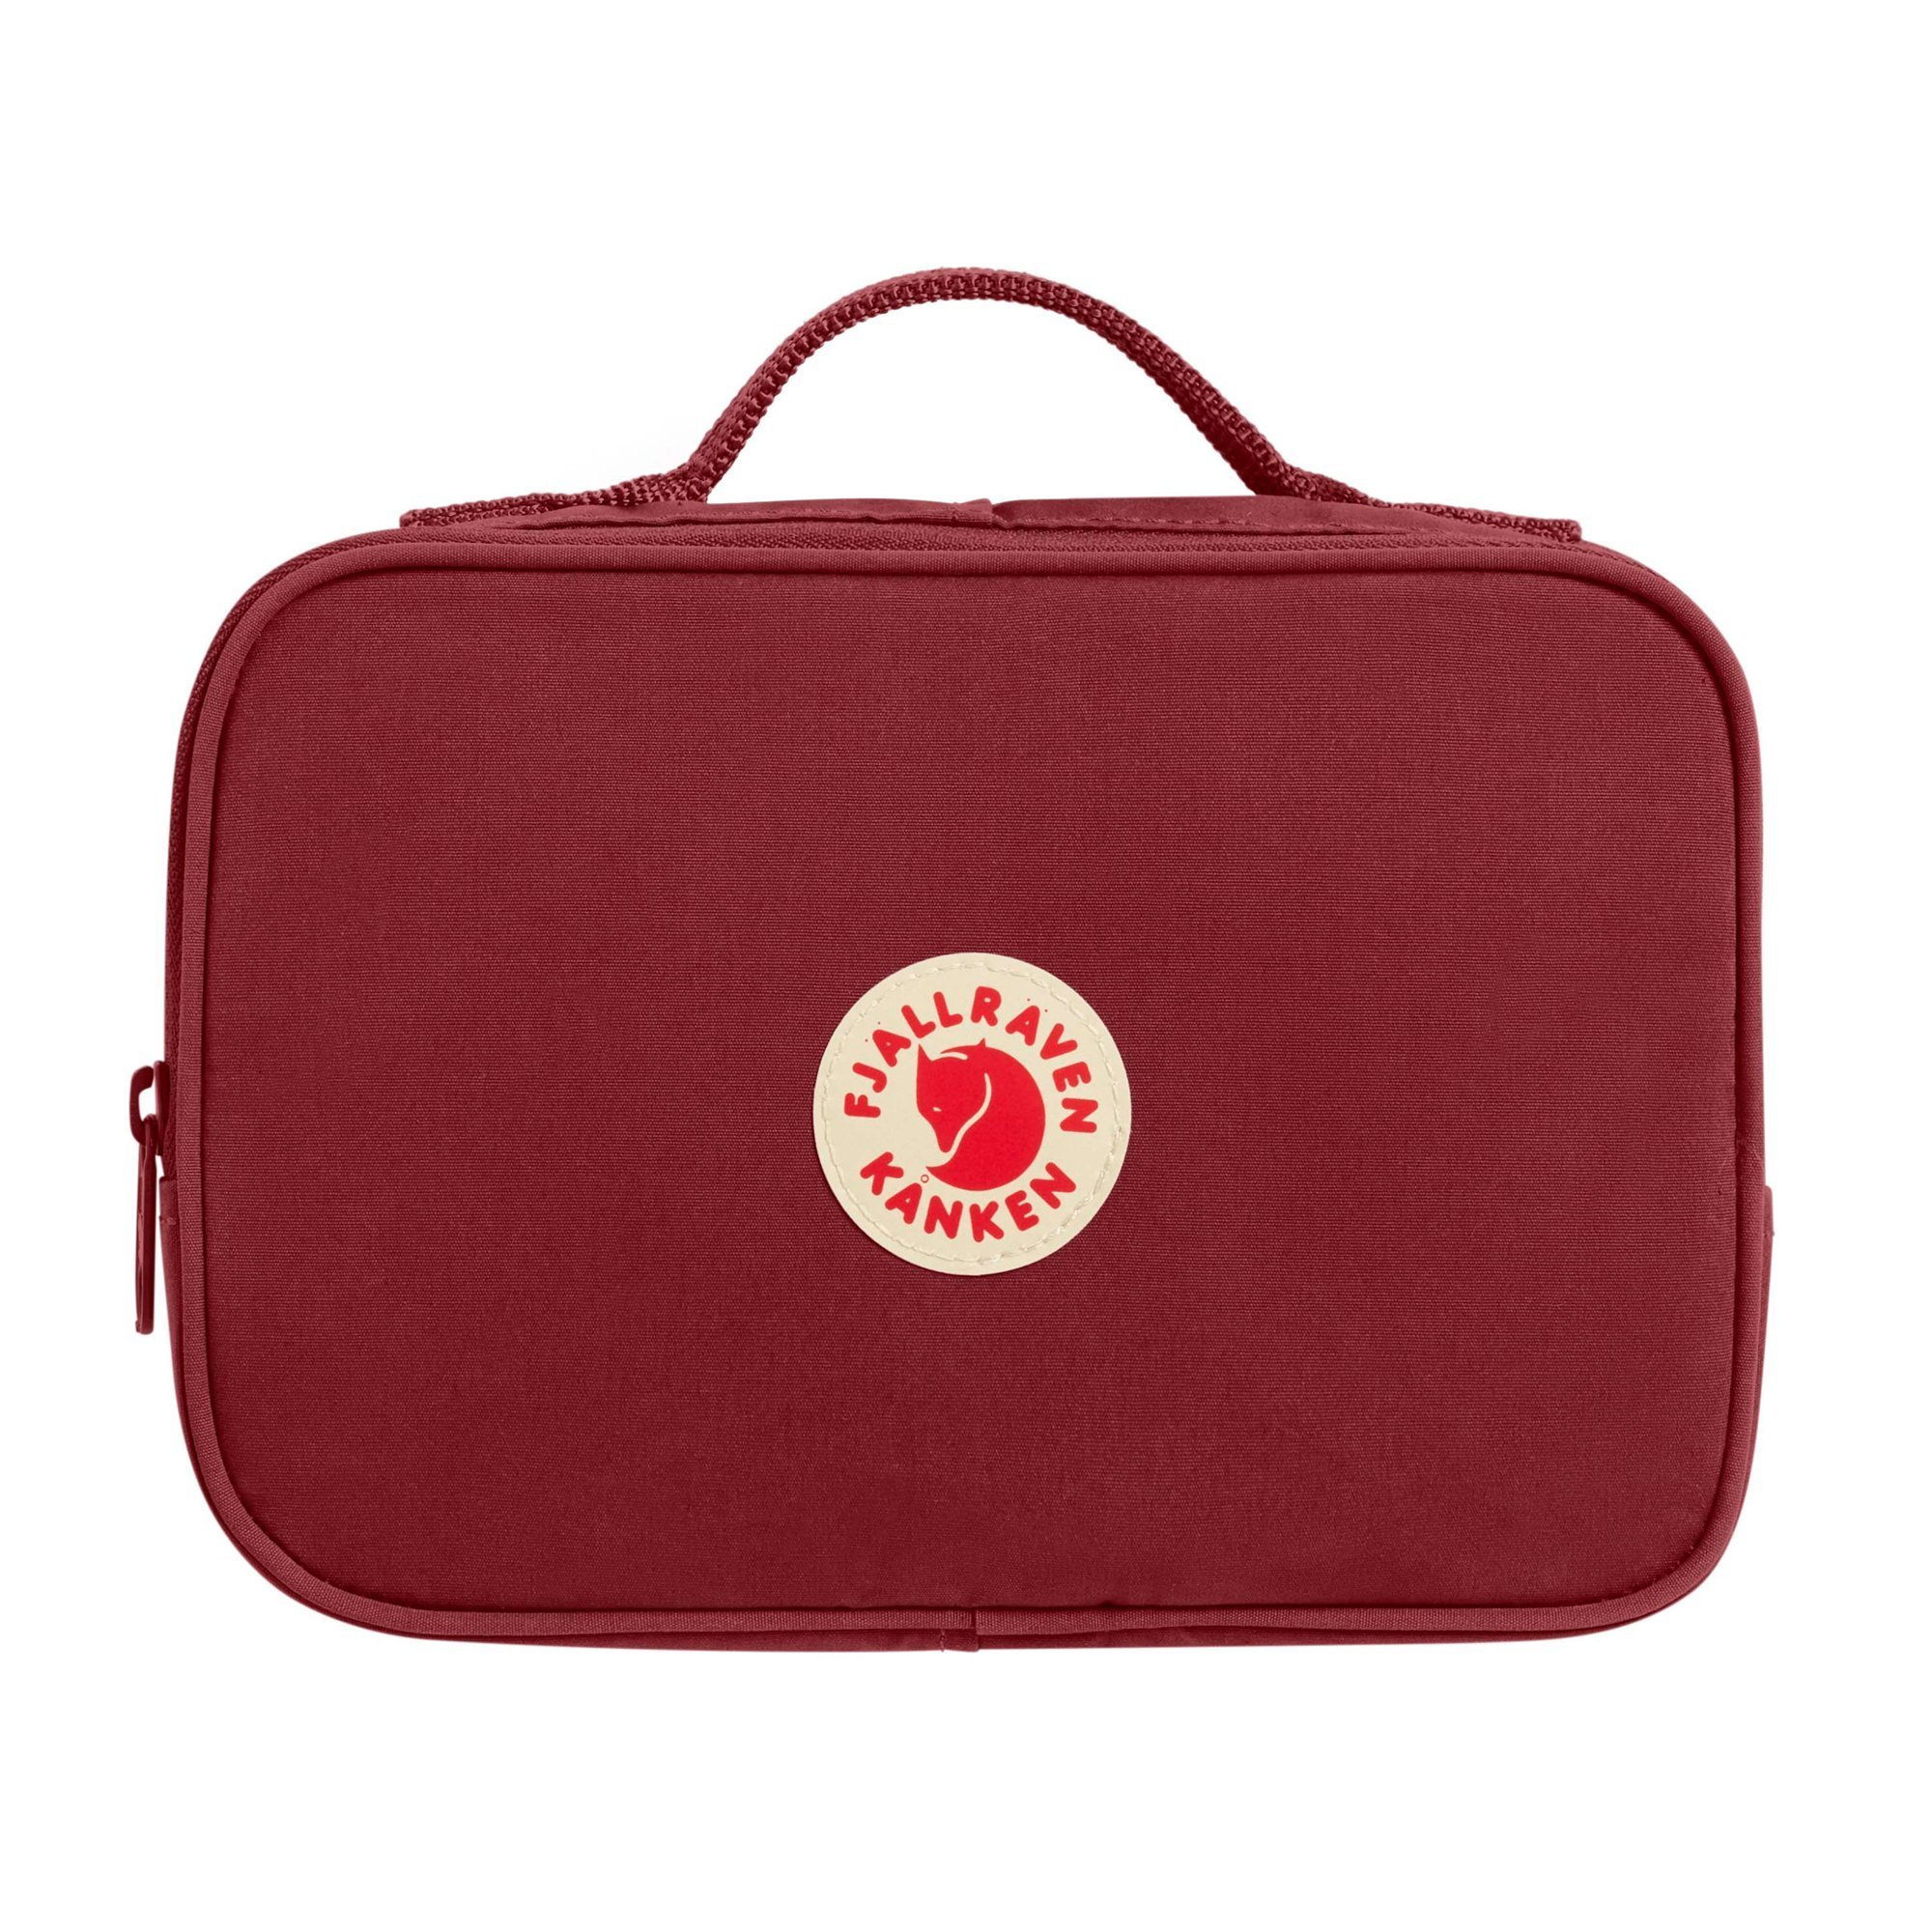 Fjallraven - Kanken Toiletry Bag for Home and Travel, Ox Red